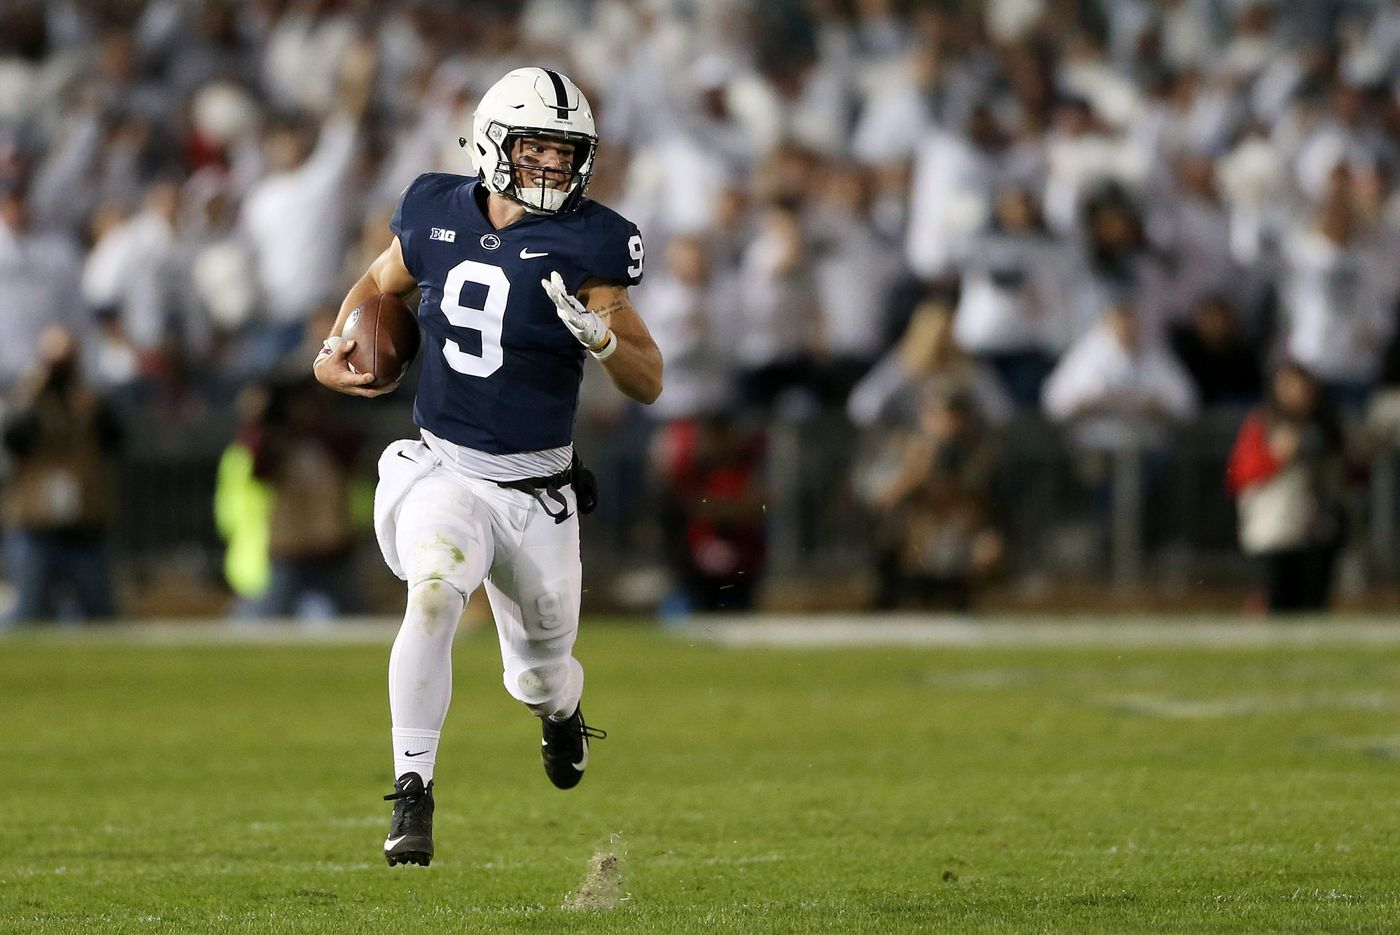 Trace McSorley gives Penn State another classic, but Ohio State leaves him empty handed